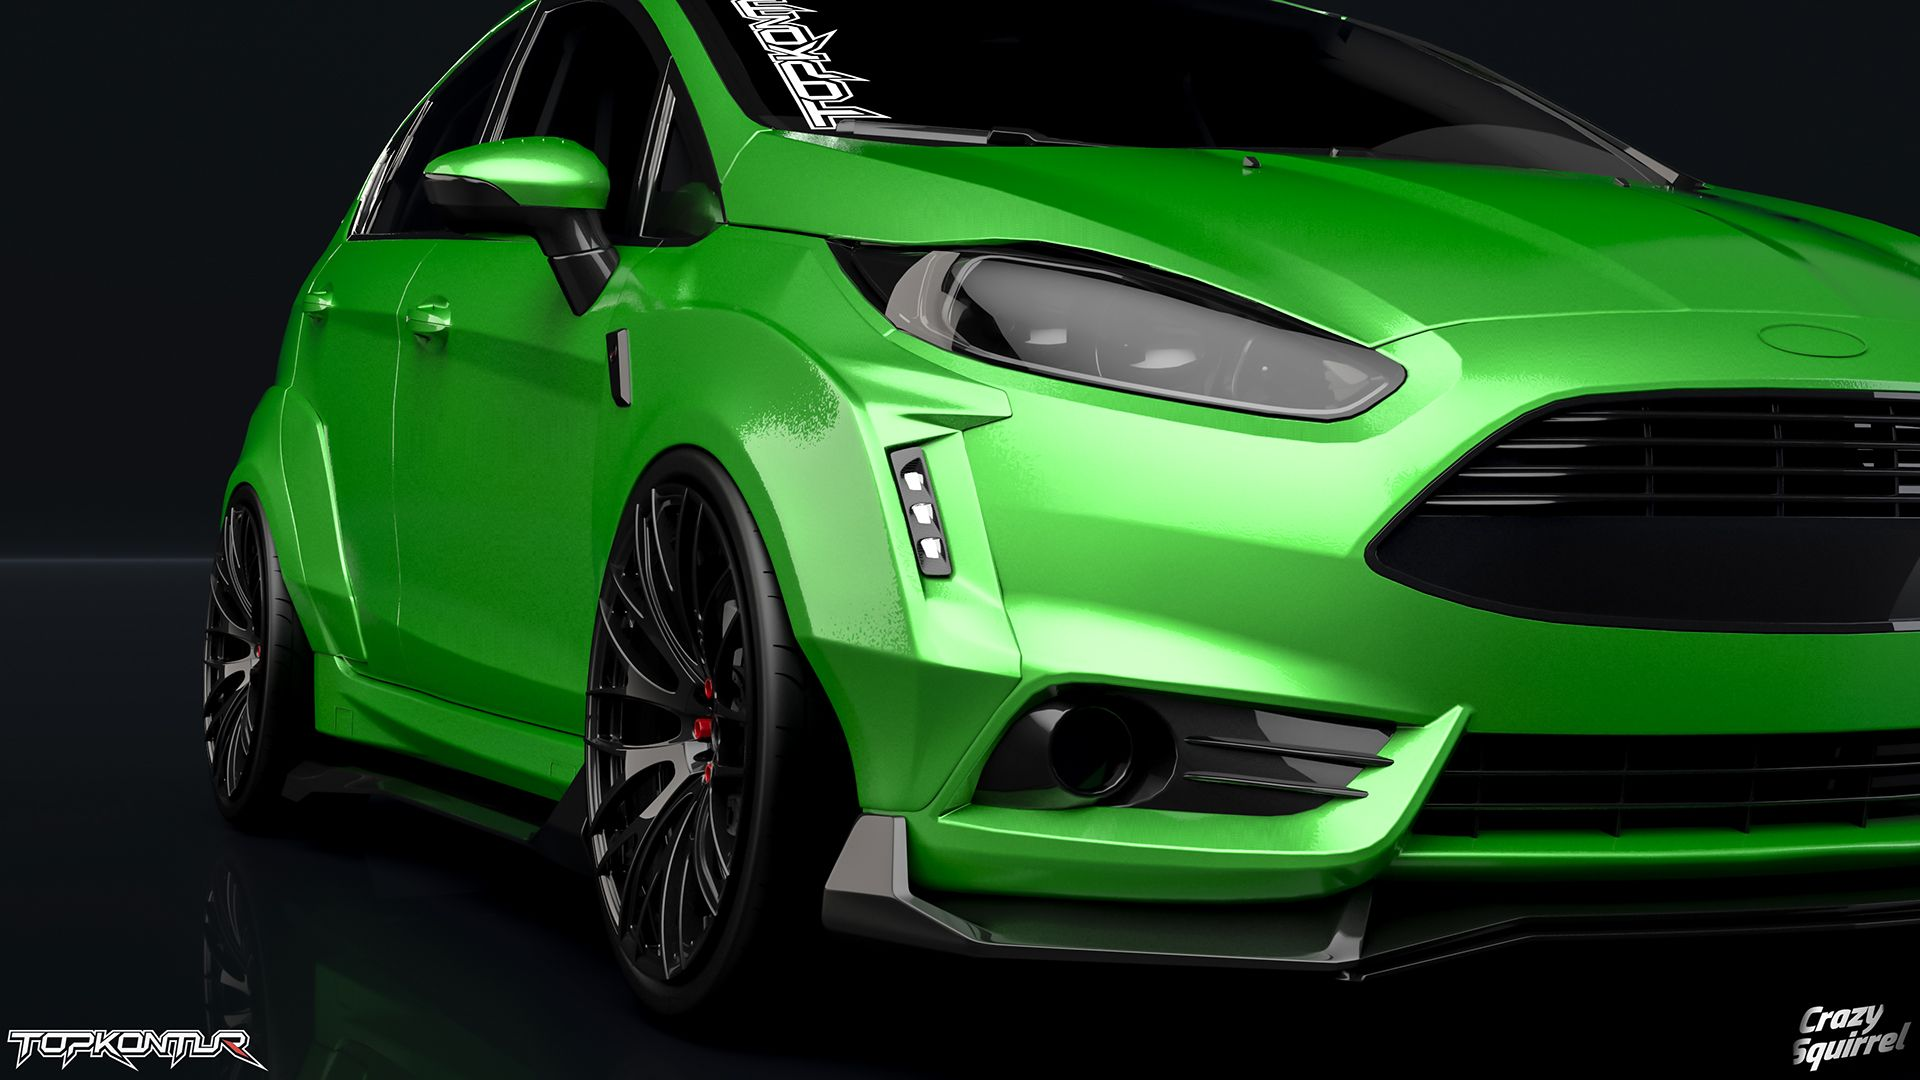 Ford Fiesta St 2016 Tuning Project Crazy Squirrel On Behance Ford Fiesta St Ford Fiesta Fiesta St